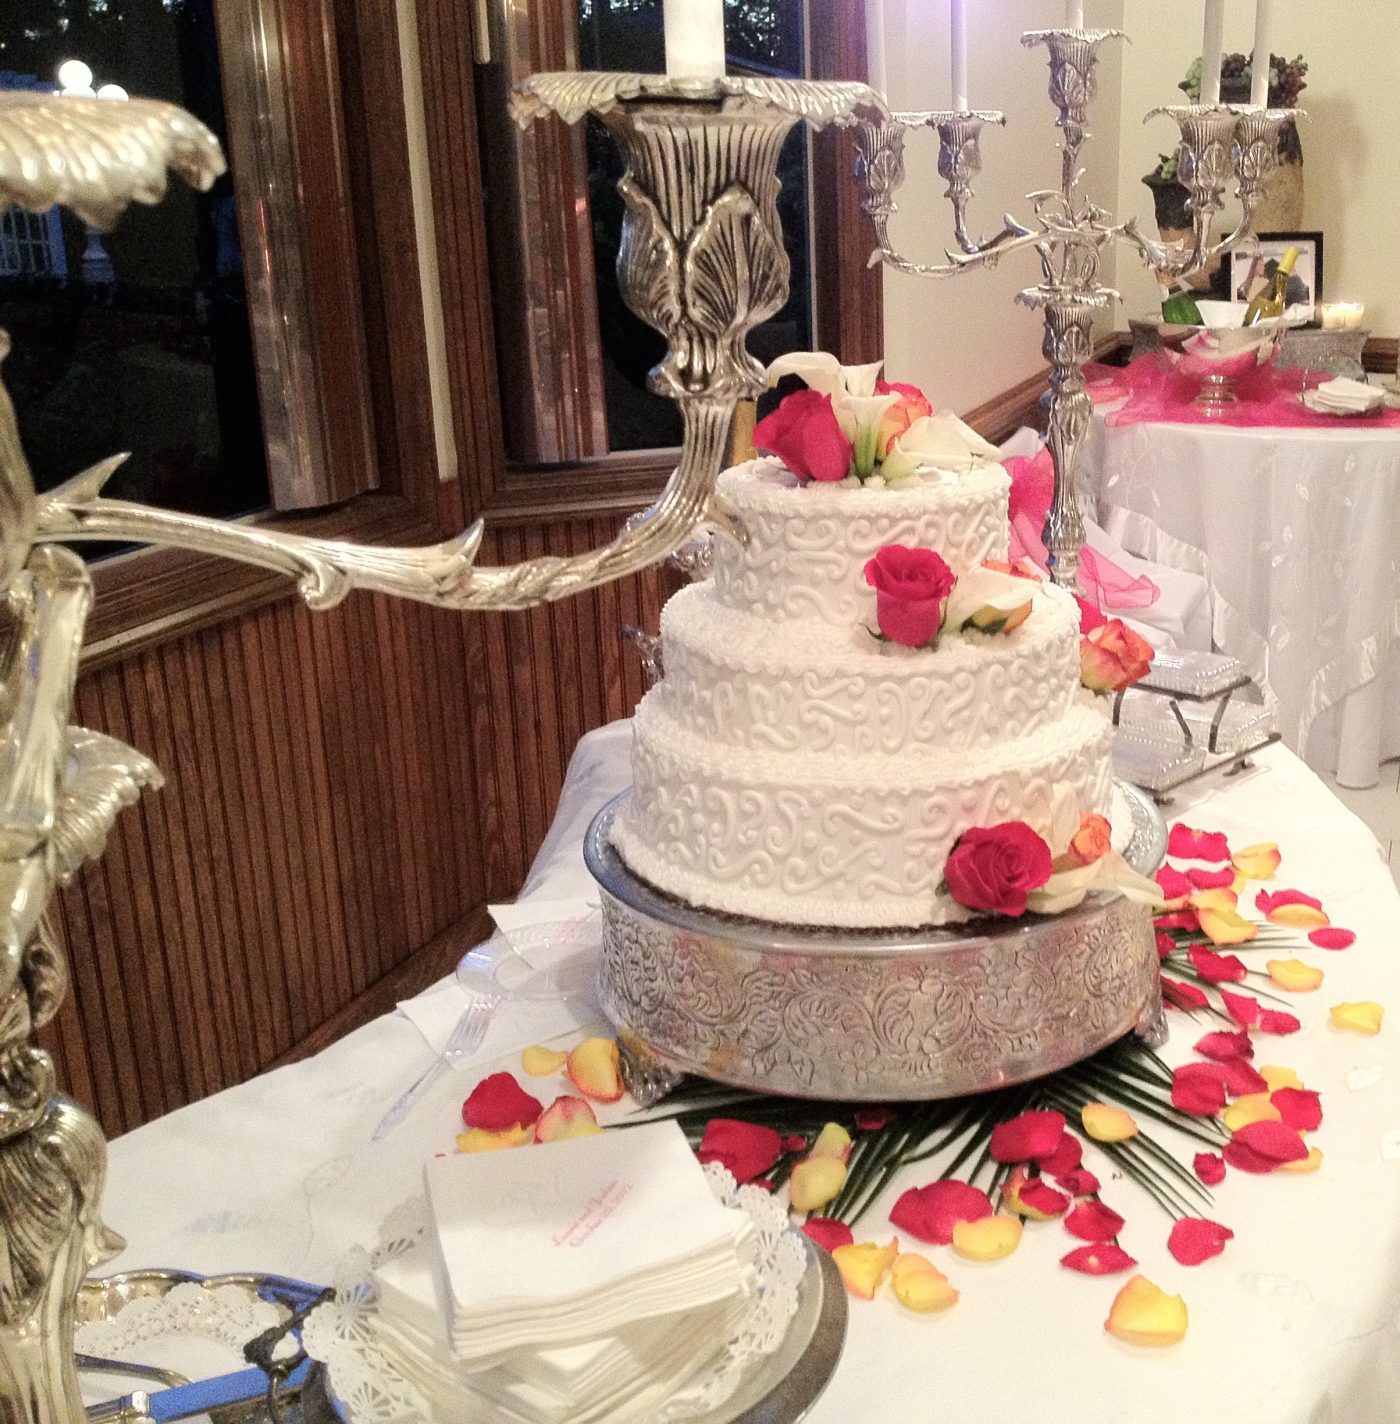 Bride's Cake at Gulf Shores Wedding Chapel